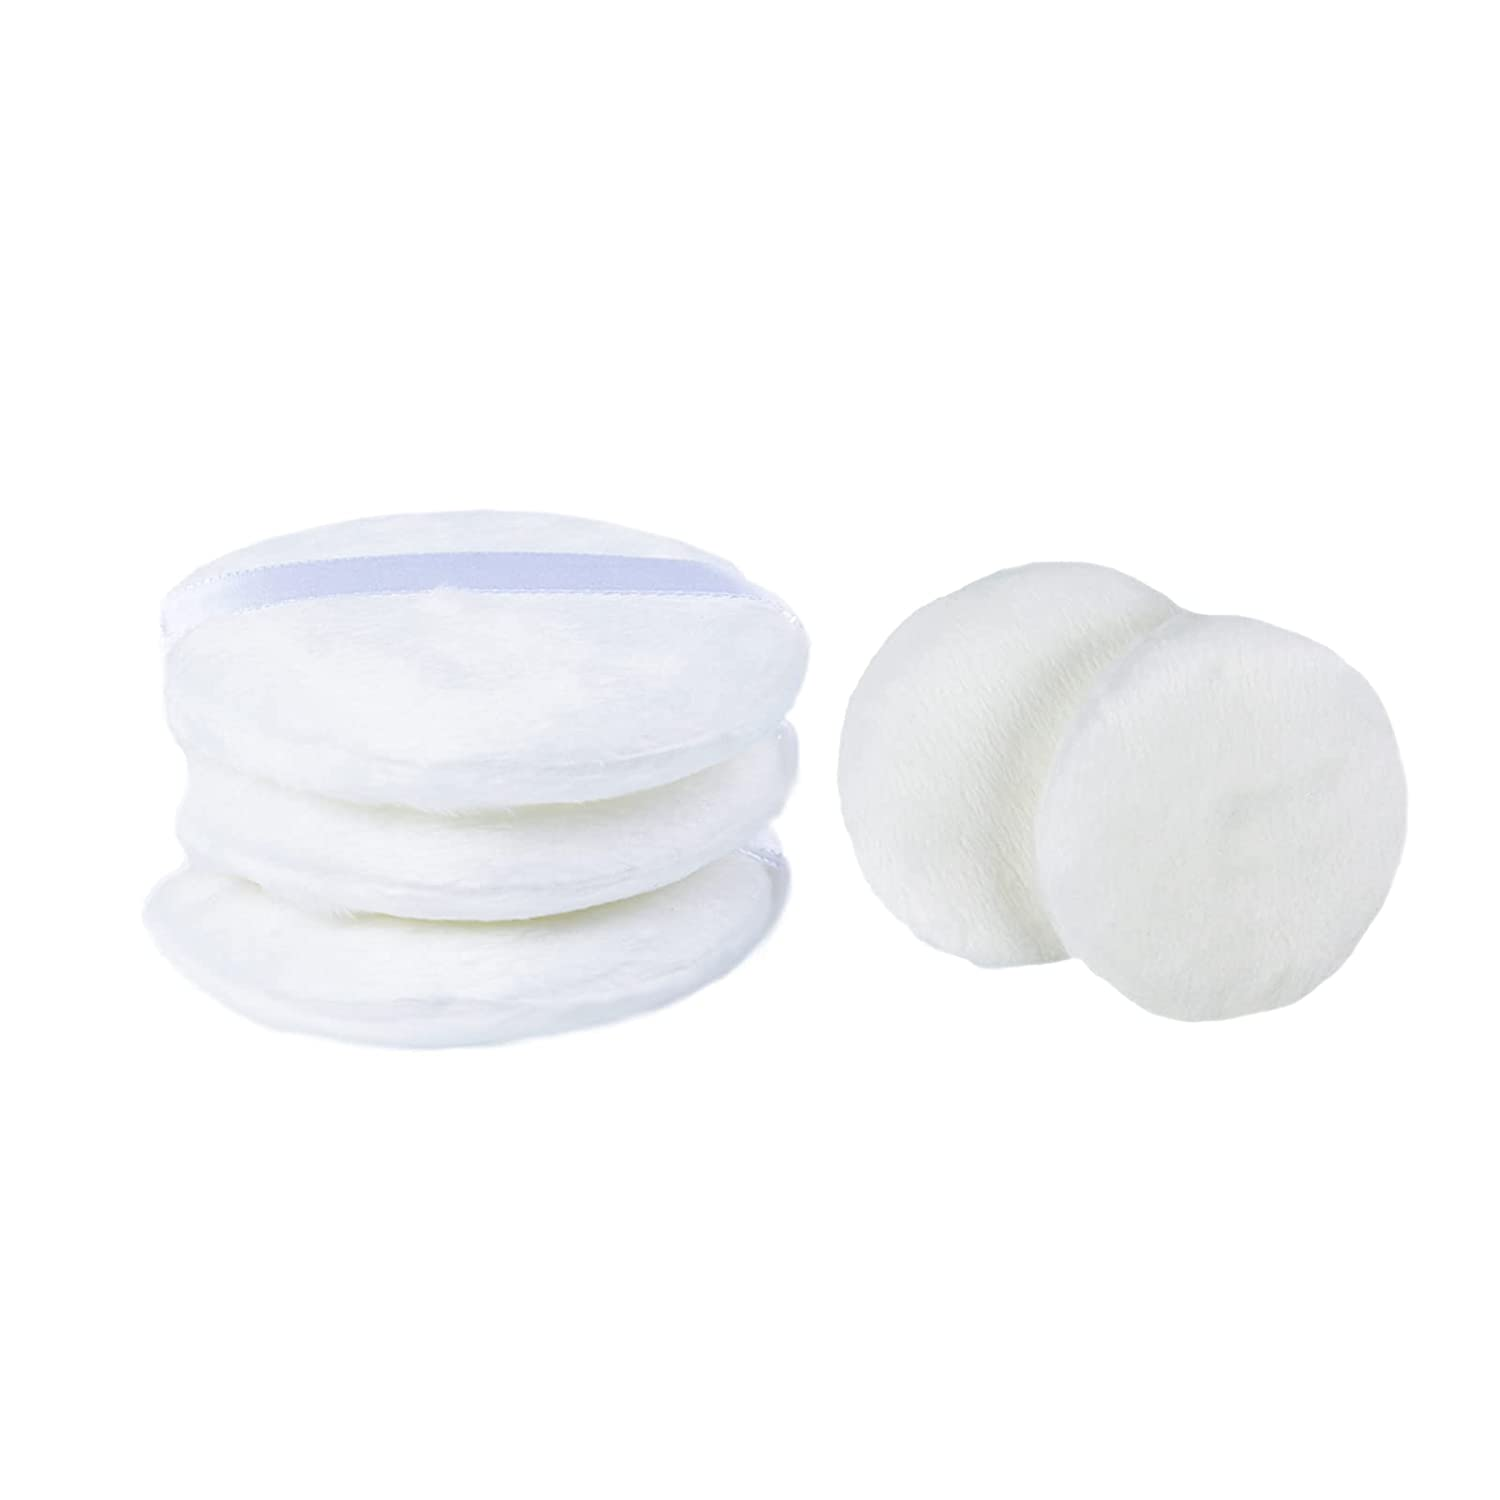 5PCS Baby Powder Puff White Super Soft Plush Suitable for Baby Body Care/Womens Daily Skin Care Makeup Cosmetic Powder Puff